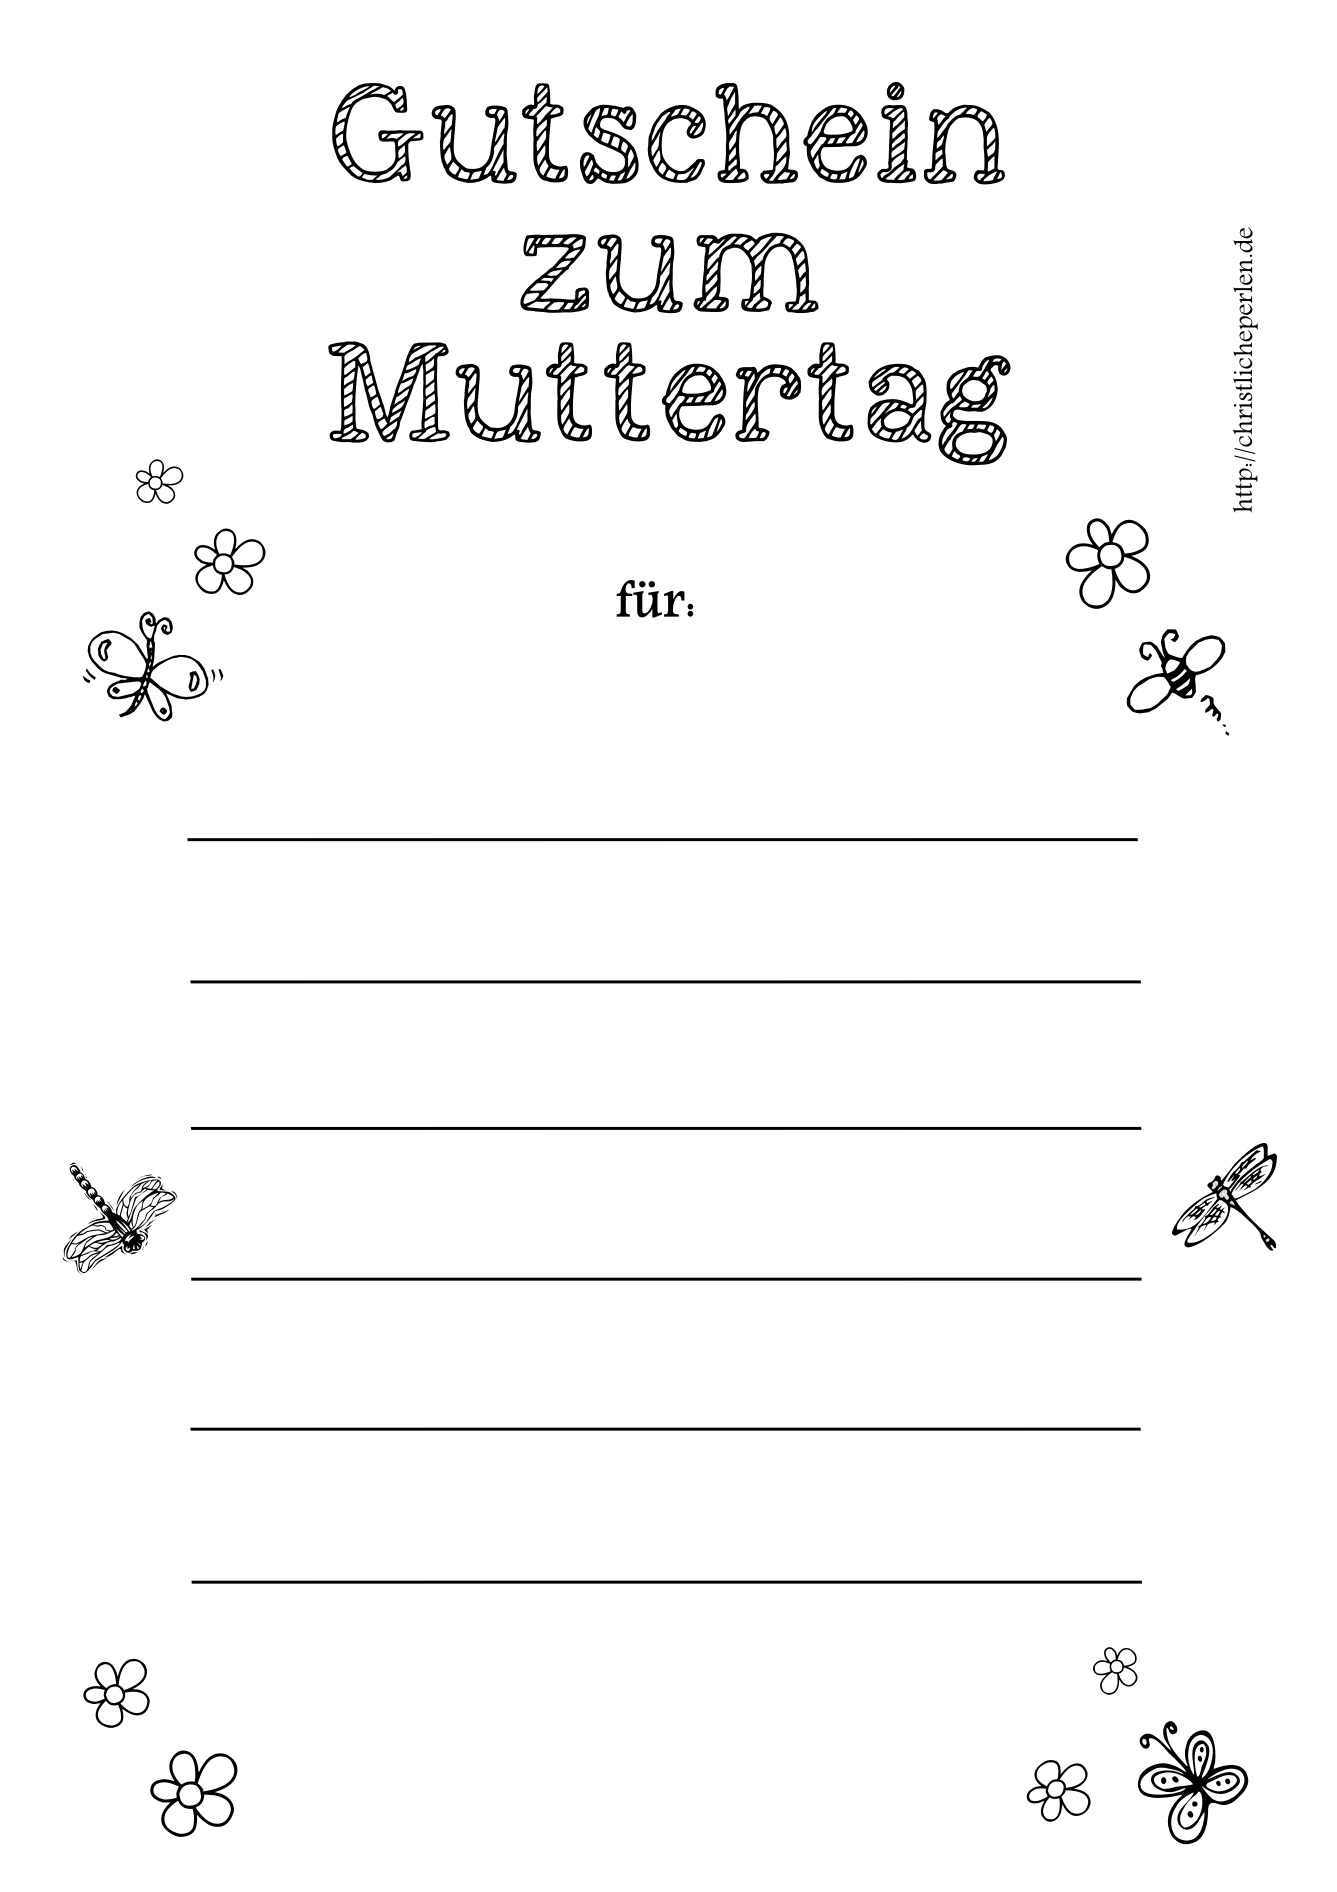 Nett Mütter Tag Vorlagen Fotos - Entry Level Resume Vorlagen ...